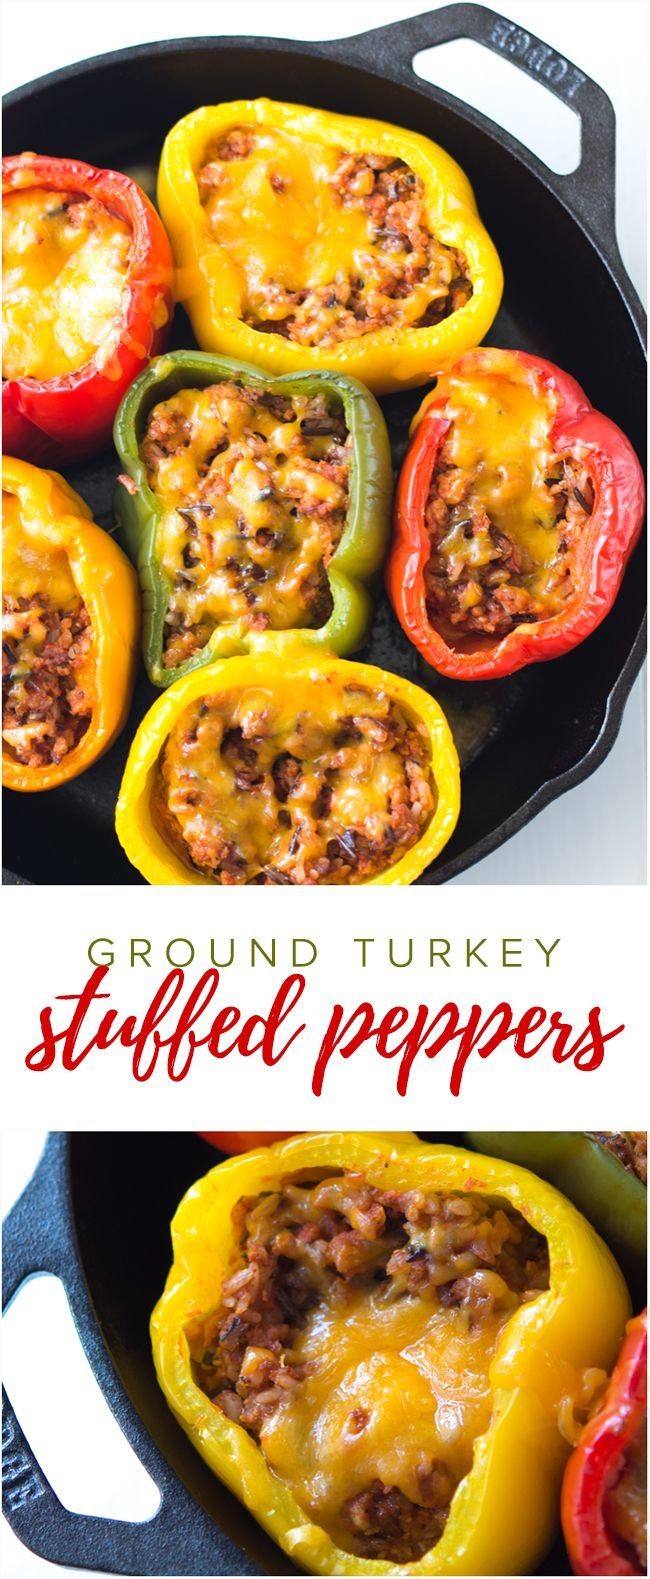 Best 25 healthy recipes ideas on pinterest healthy dinner ground turkey stuffed peppers easy turkey recipescrockpot ground turkey recipeslean meat recipessimple healthy dinner forumfinder Gallery